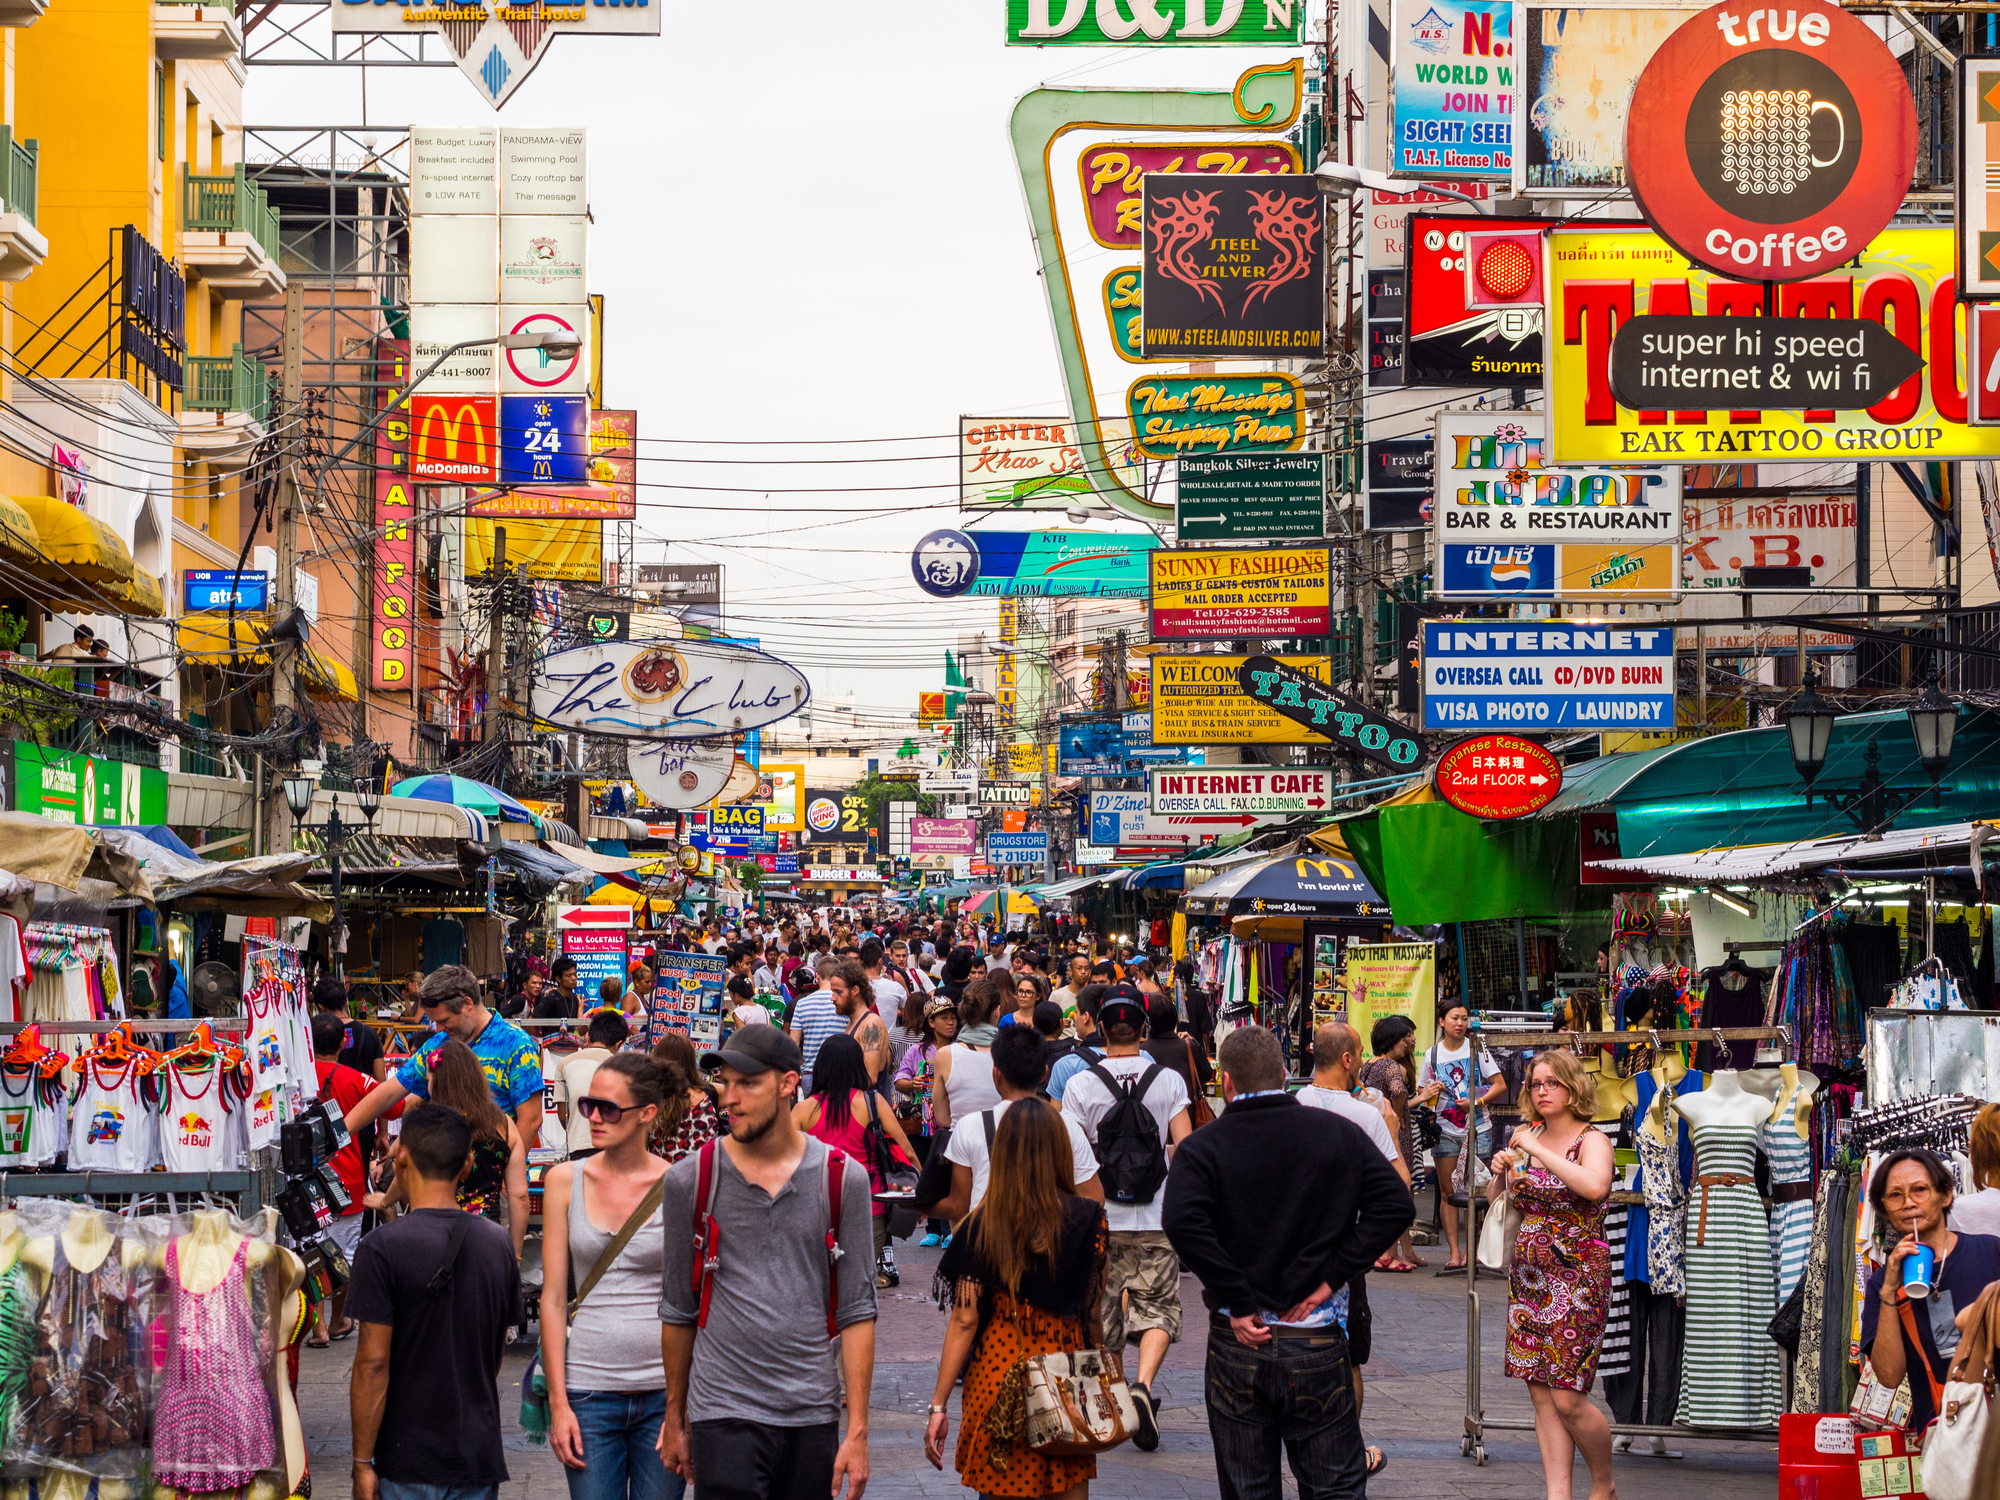 Crowded Pattaya town fillde with tourist and poeple walking in the afternoon.